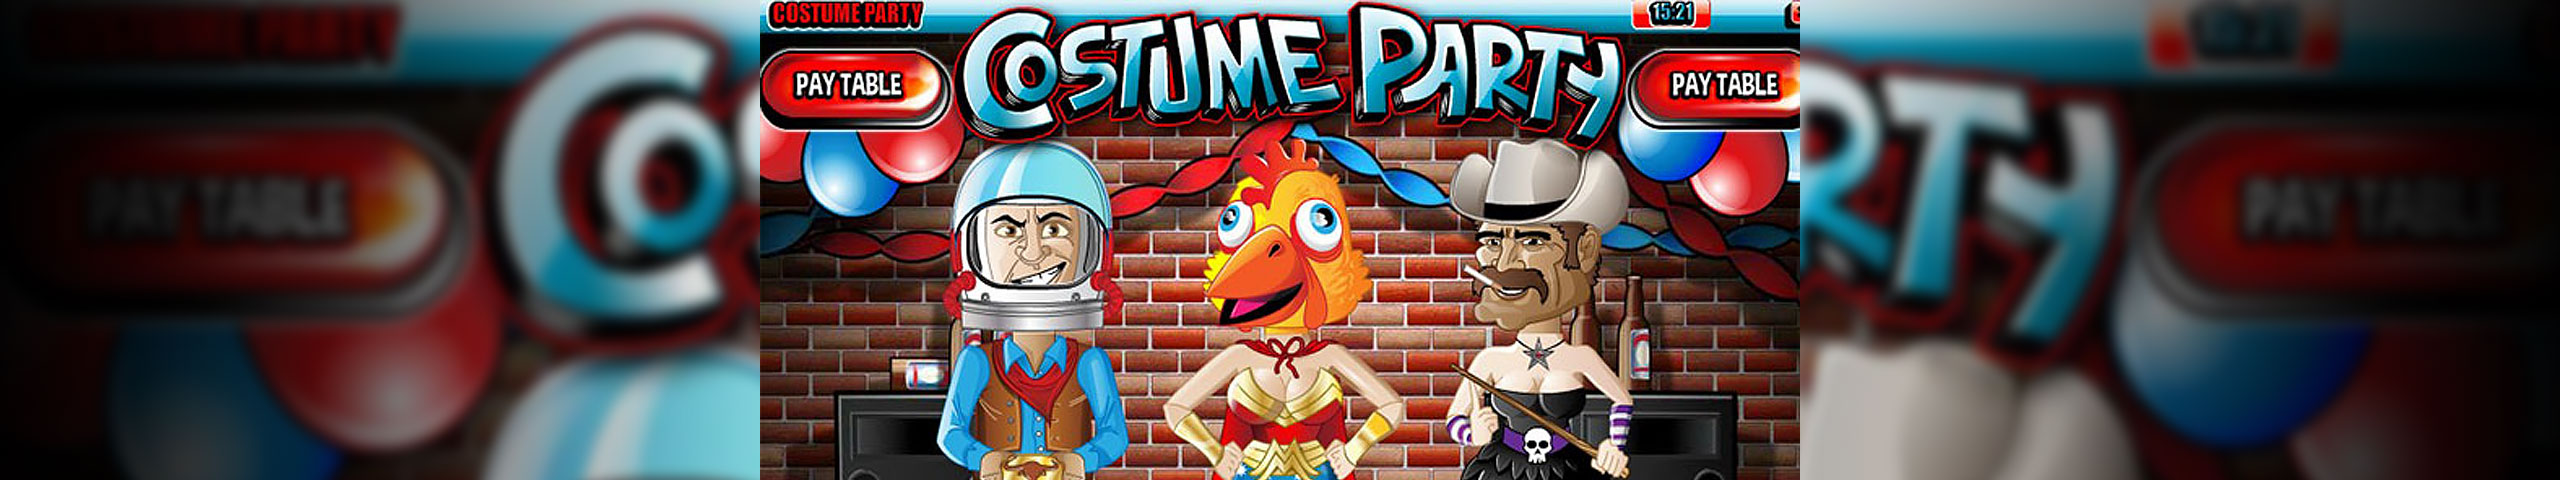 Spelautomater Costume Party, Rival Slider - Wyrmspel.com